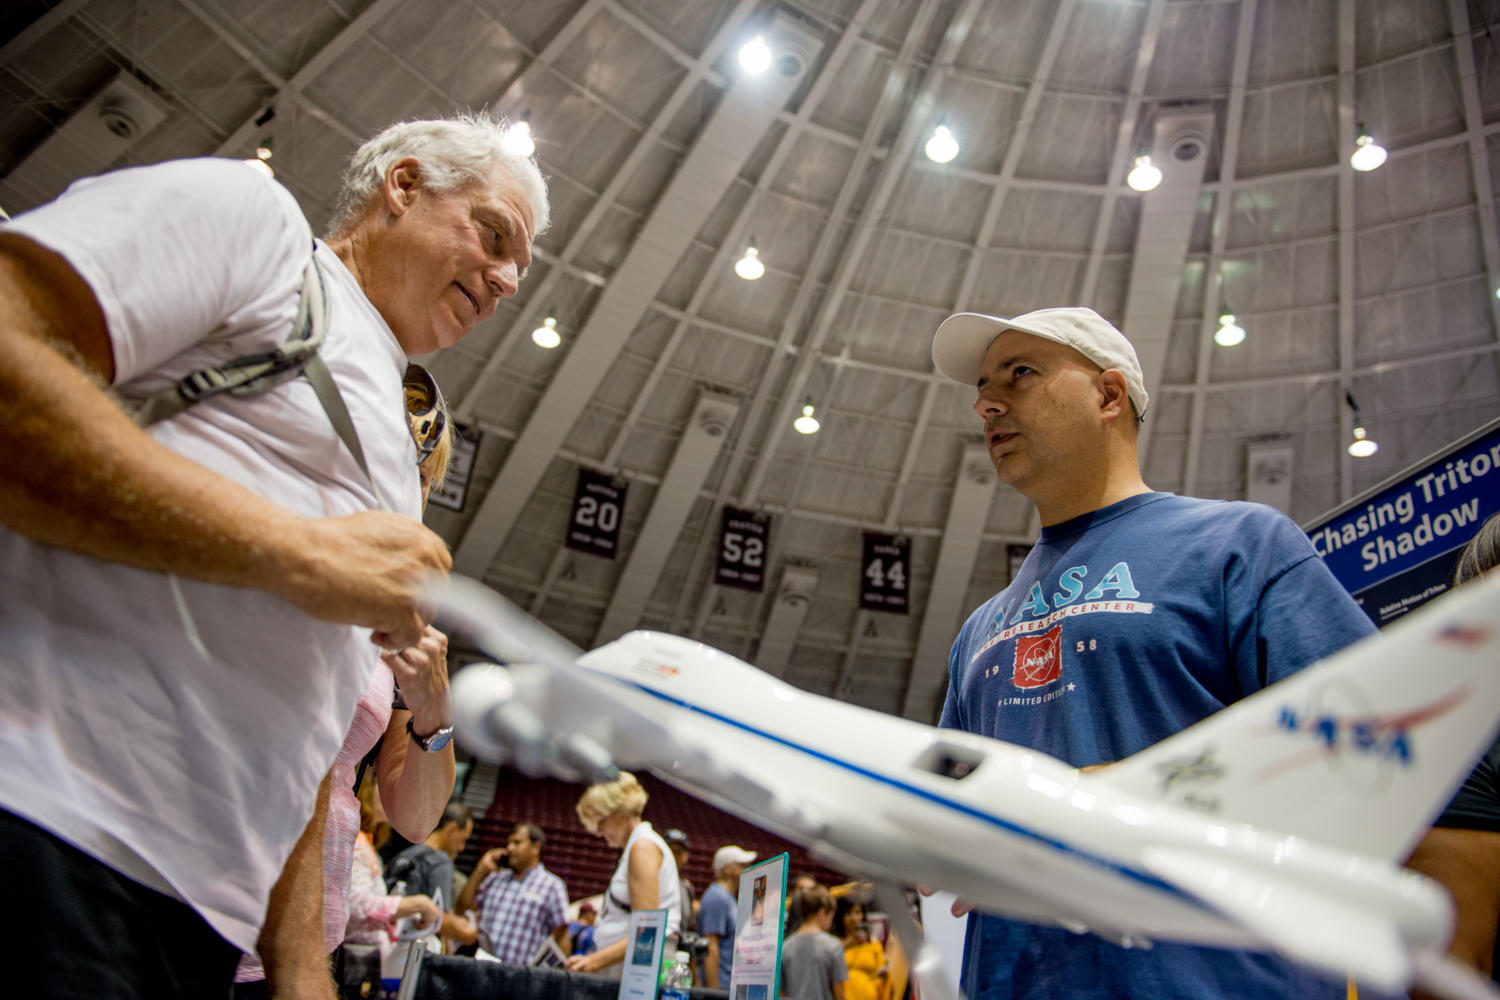 Universities Space Research Association software developed Scott Davis, of Mountain View, California, explains the components of the Stratospheric Observatory for Infared Astronomy (SOFIA) project to John Cremma, of Chicago Monday, Aug. 21, 2017, at the science astronomy and technology expo, at the SIU Arena. (Brian Muñoz | @BrianMMunoz)